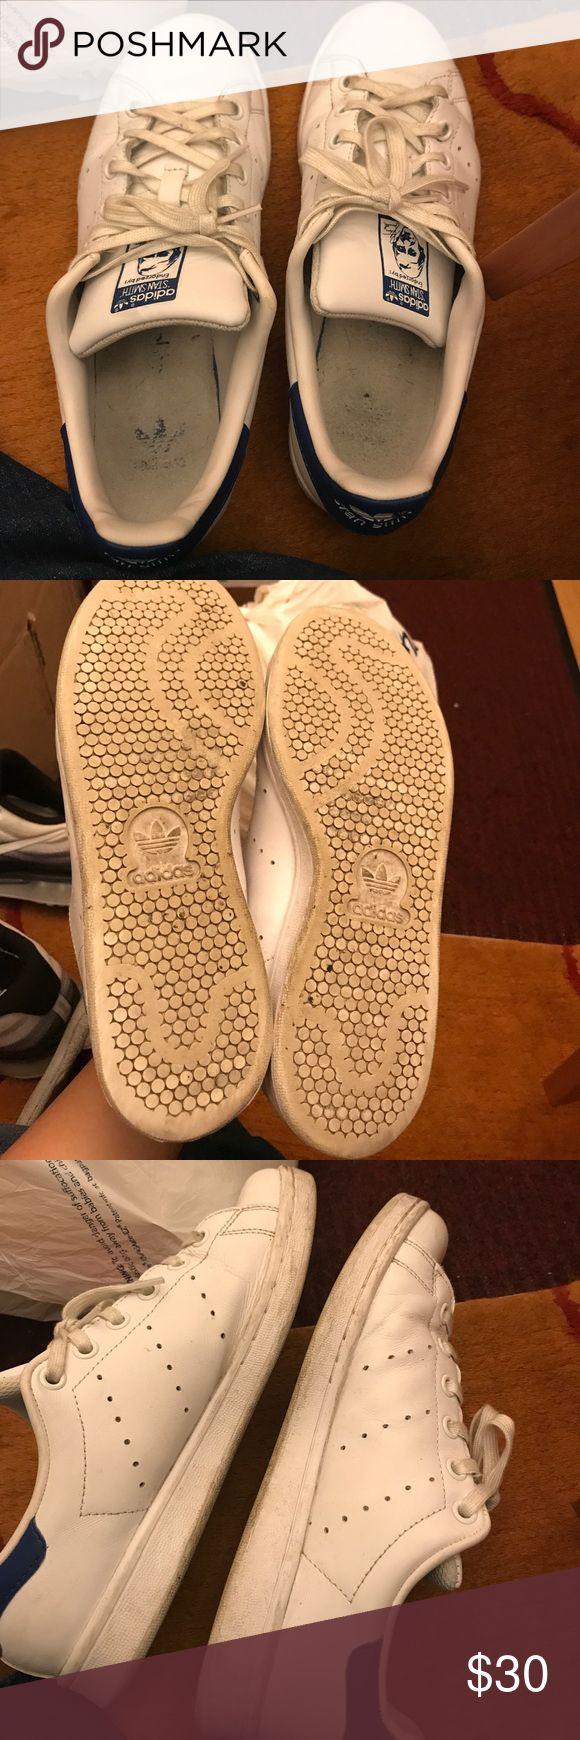 Adidas Stan Smiths KIDS Worn, in great condition. Fits a women's size 8!! Price neg adidas Shoes Sneakers